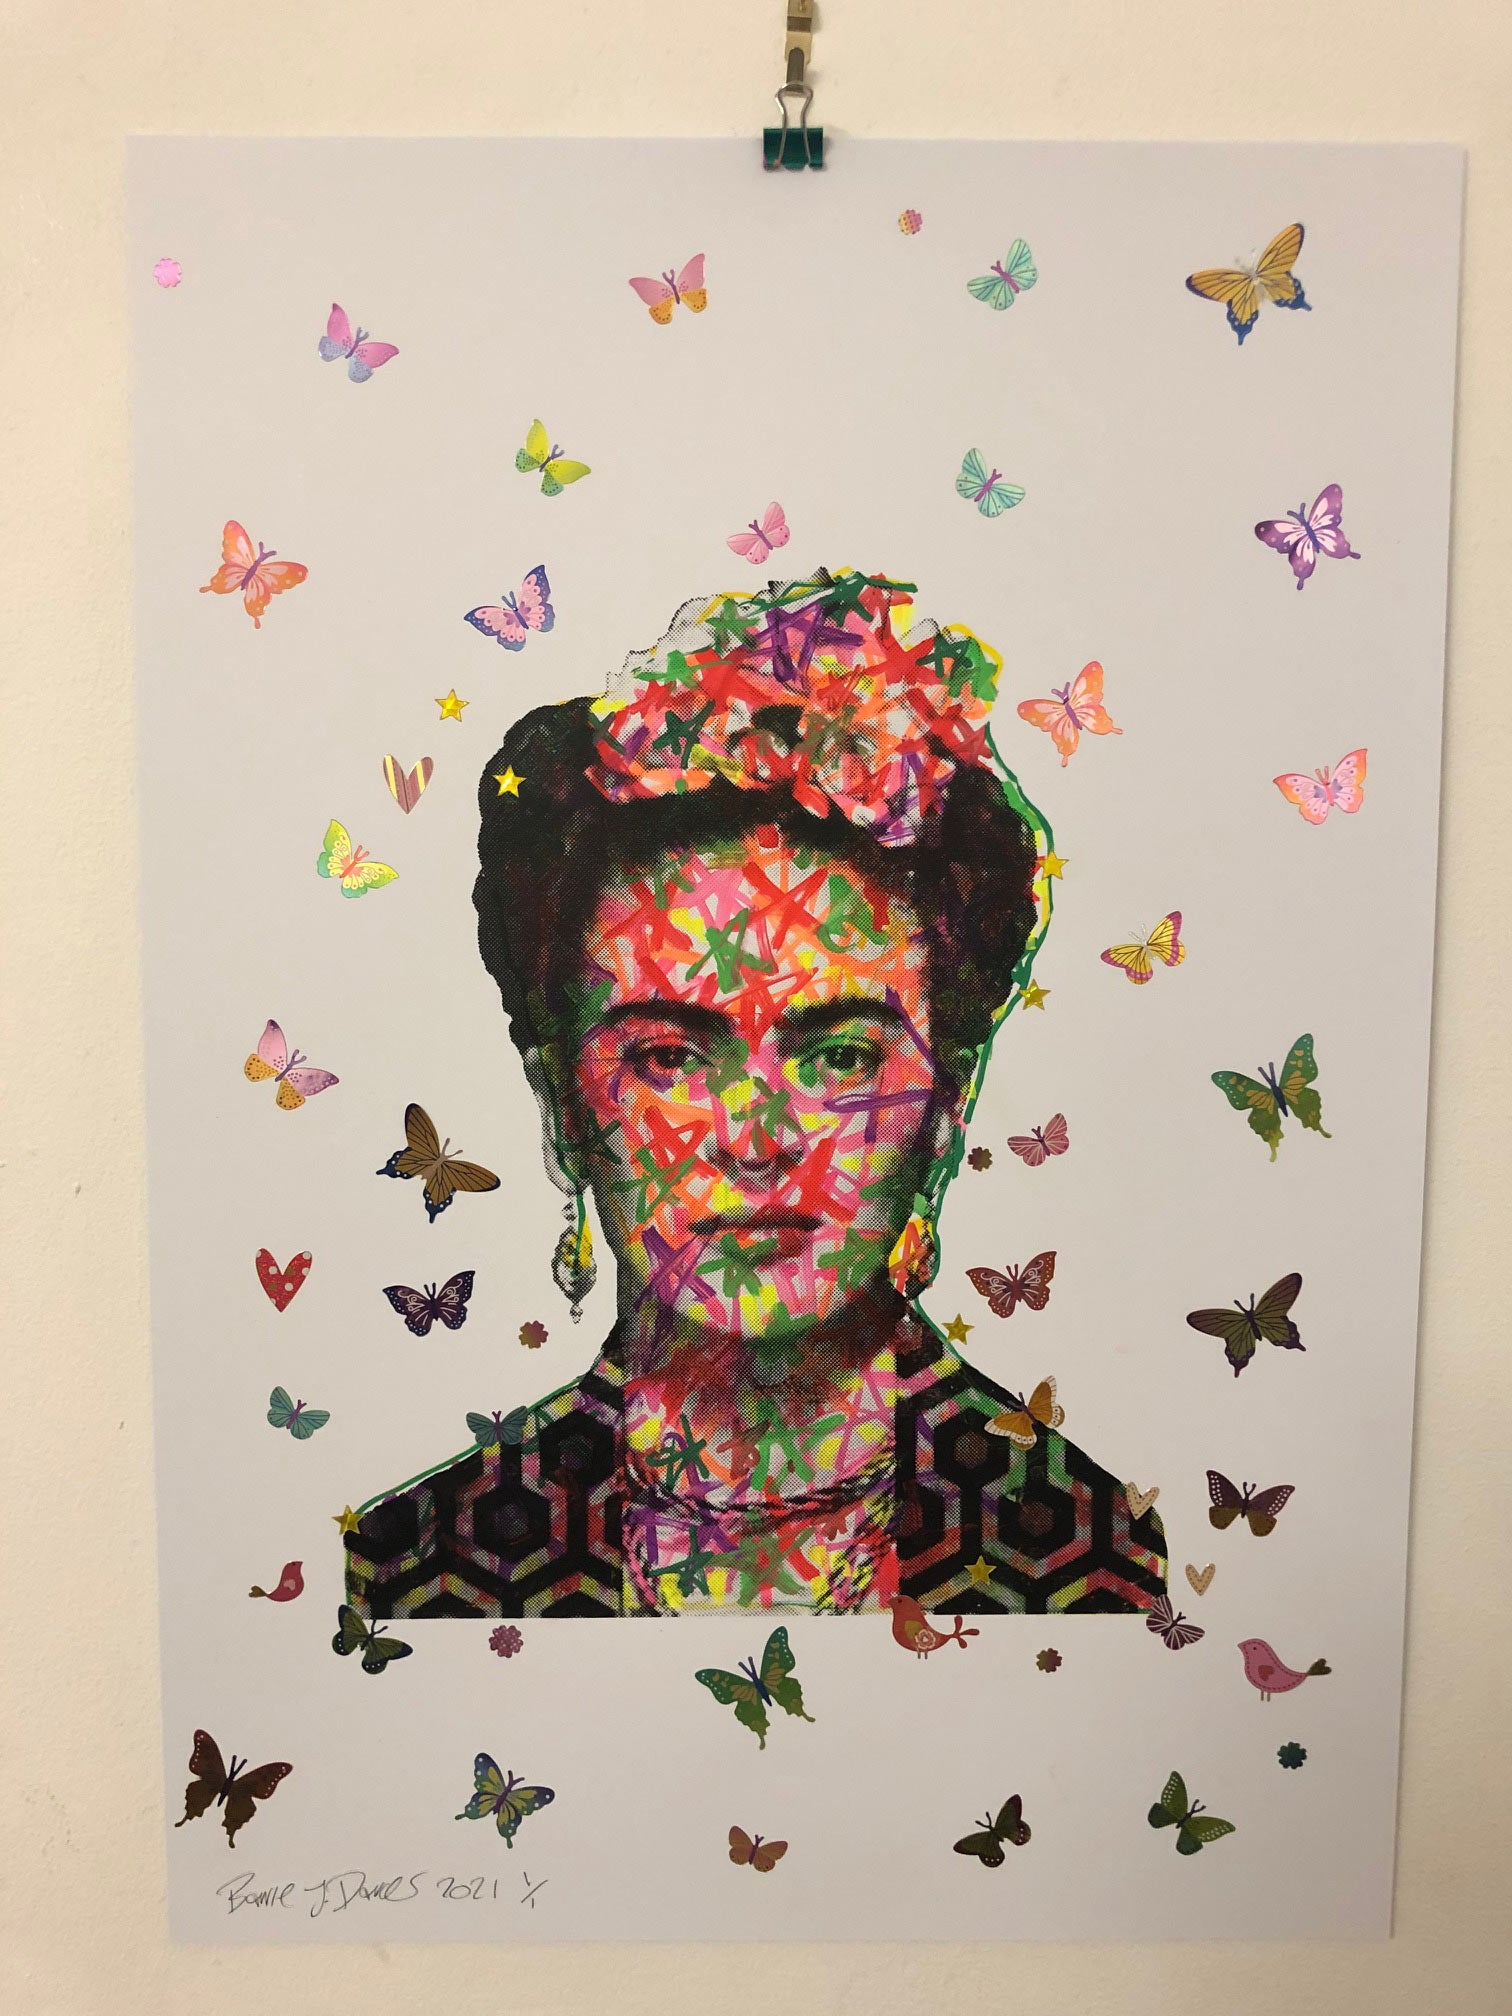 Shine On You Crazy Diamond Butterfly Print by Barrie J Davies 2021, Urban Pop Art Street Artist based in Brighton England UK. Buy online for free delivery worldwide.